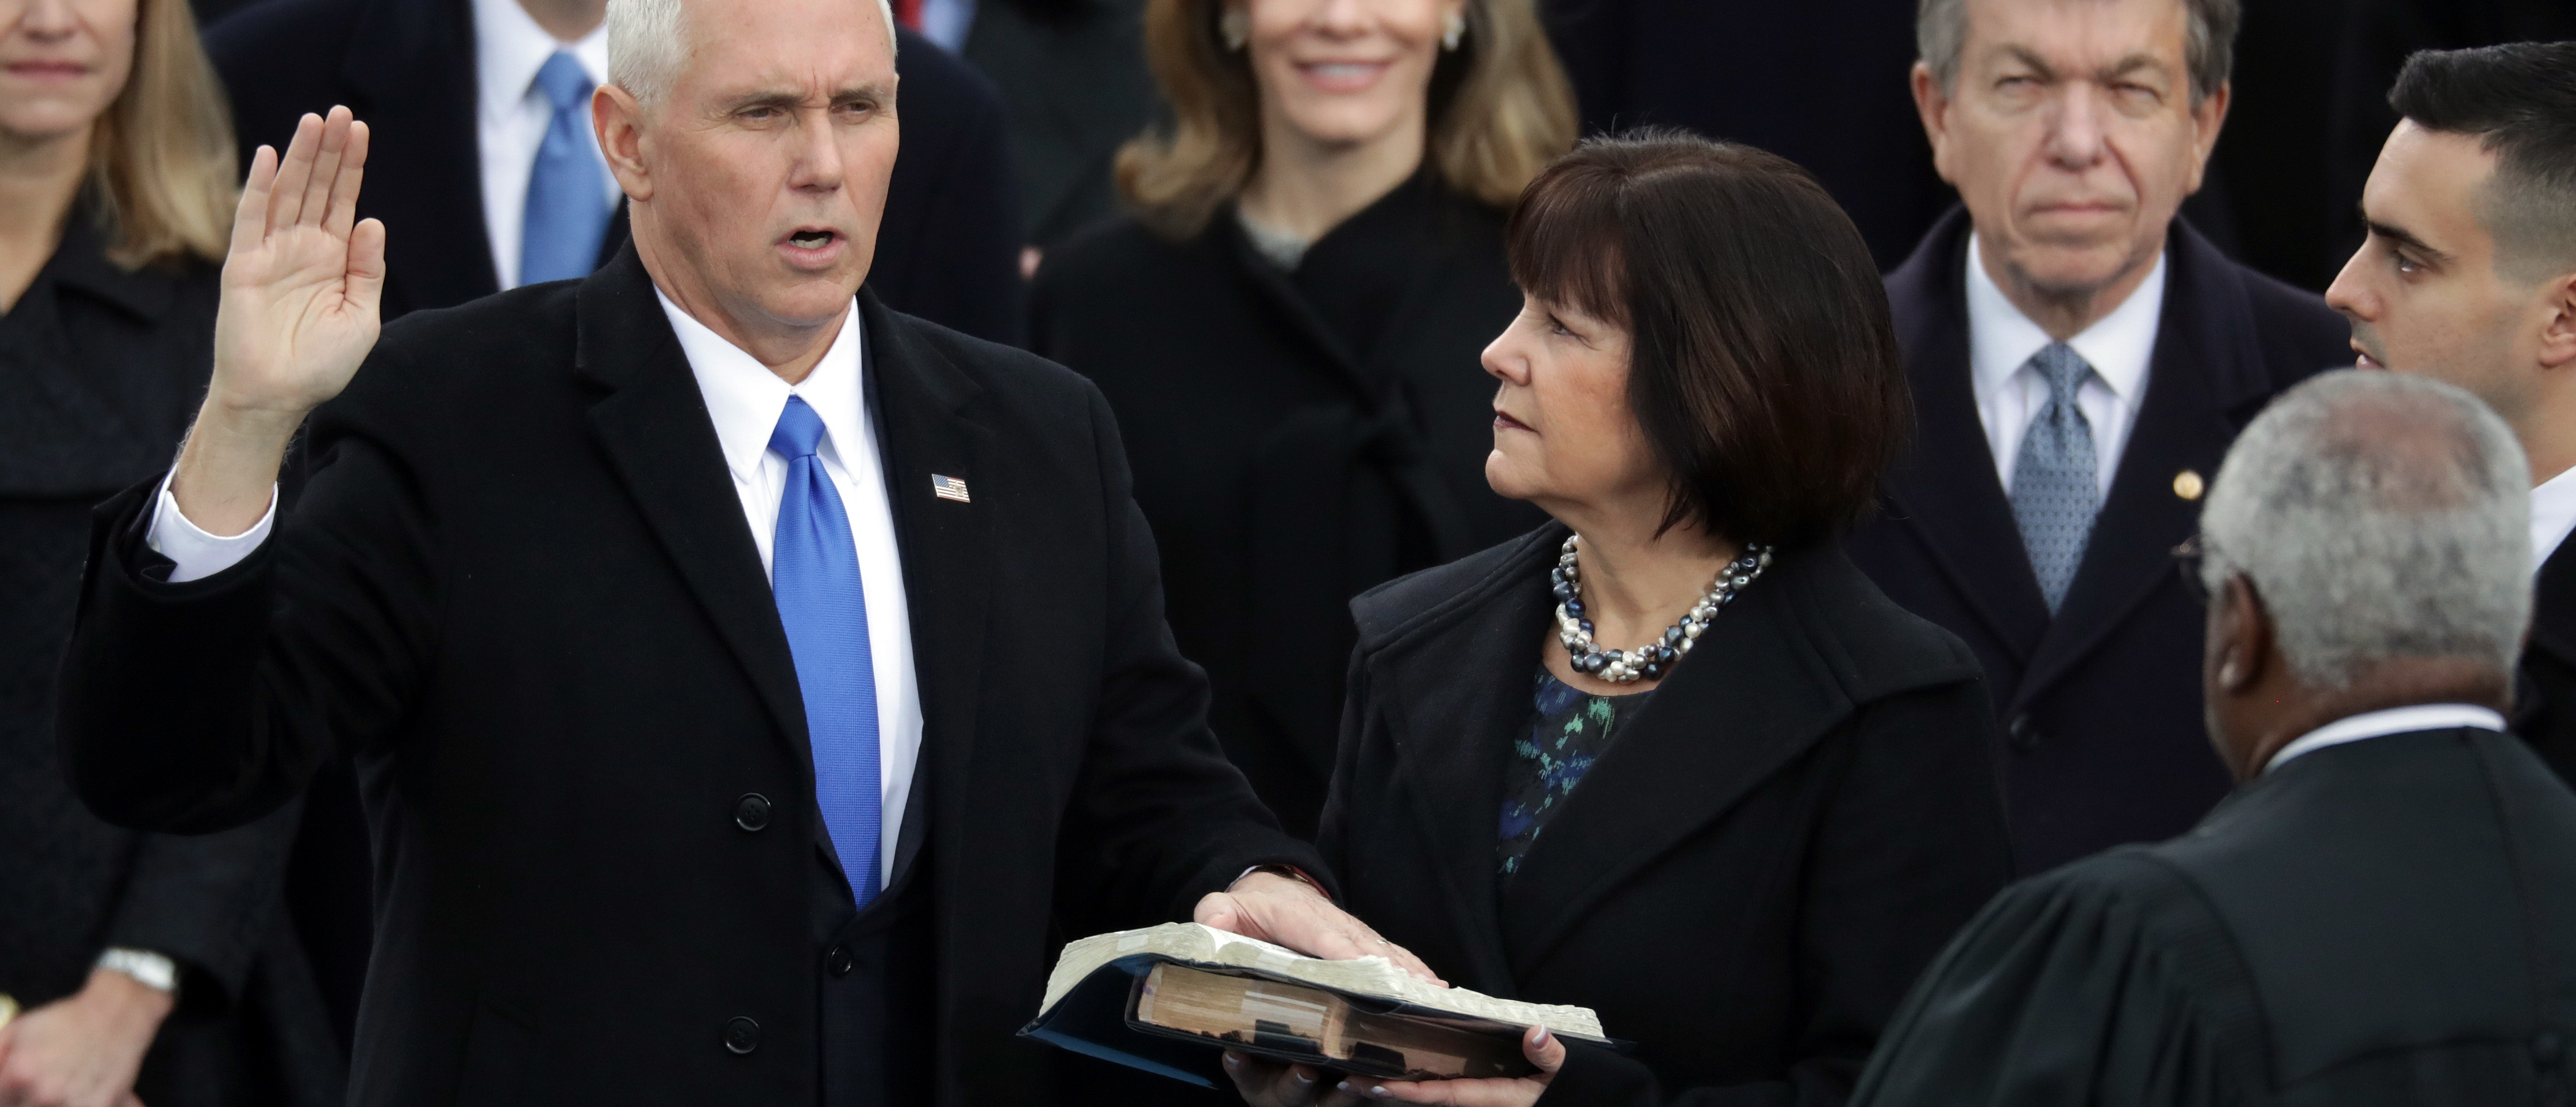 OPINION: Freak-Out Over Karen Pence Shows The War On Christianity Is Alive And Well